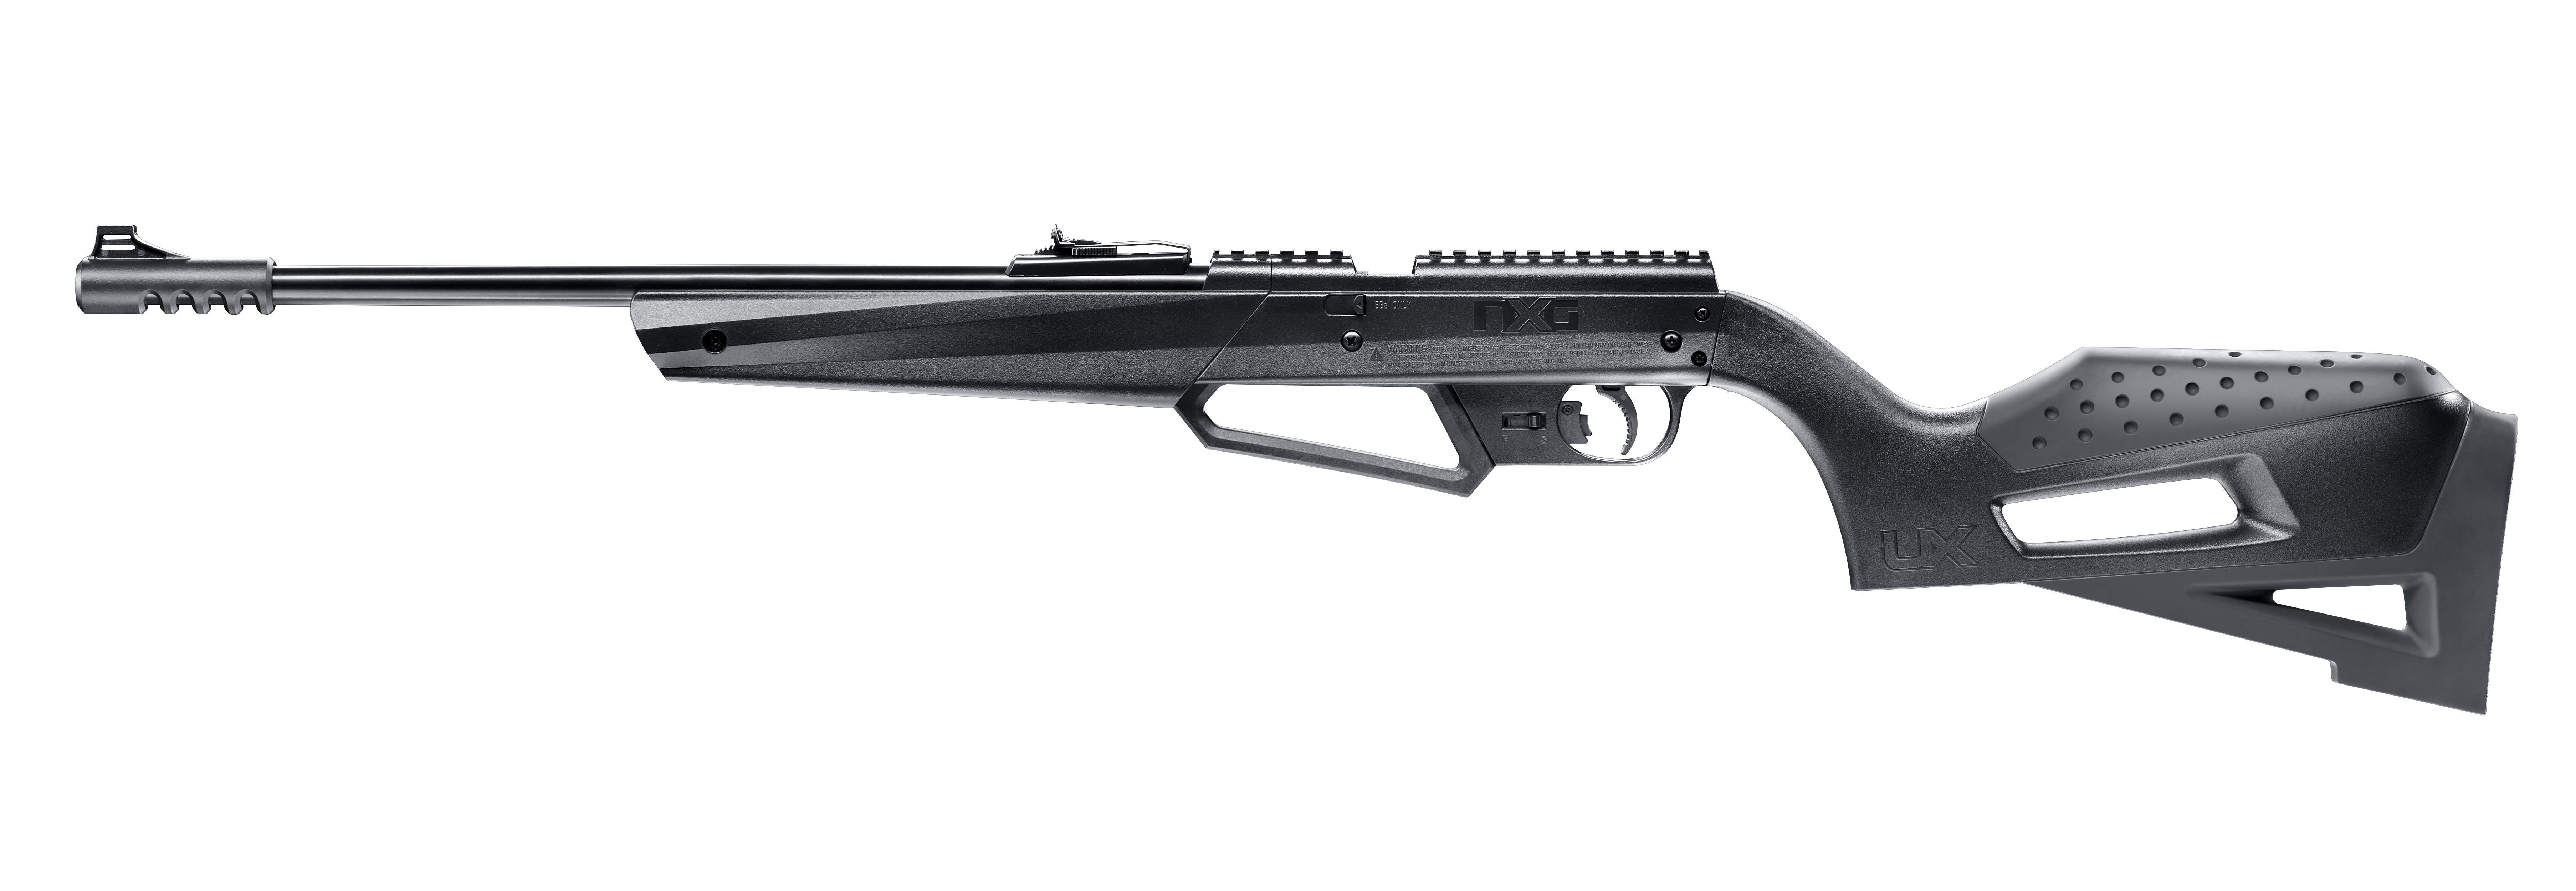 NXG (Umarex) Pump Action Airgun APX